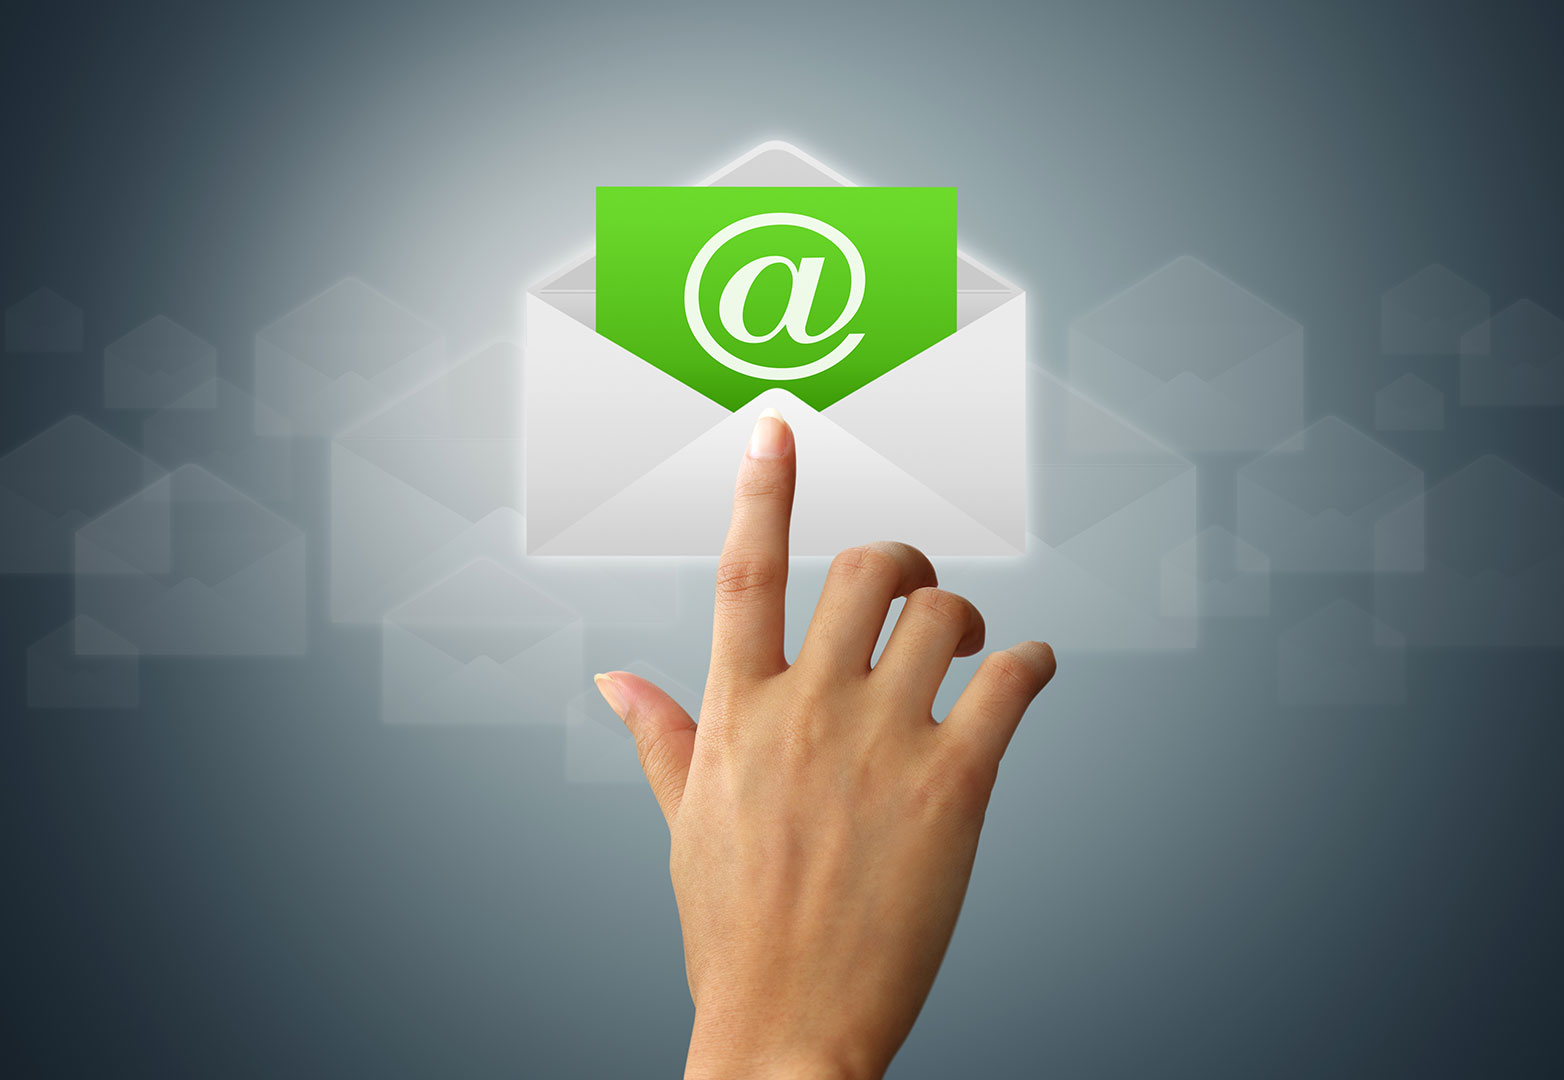 nội dung email ngắn gọn